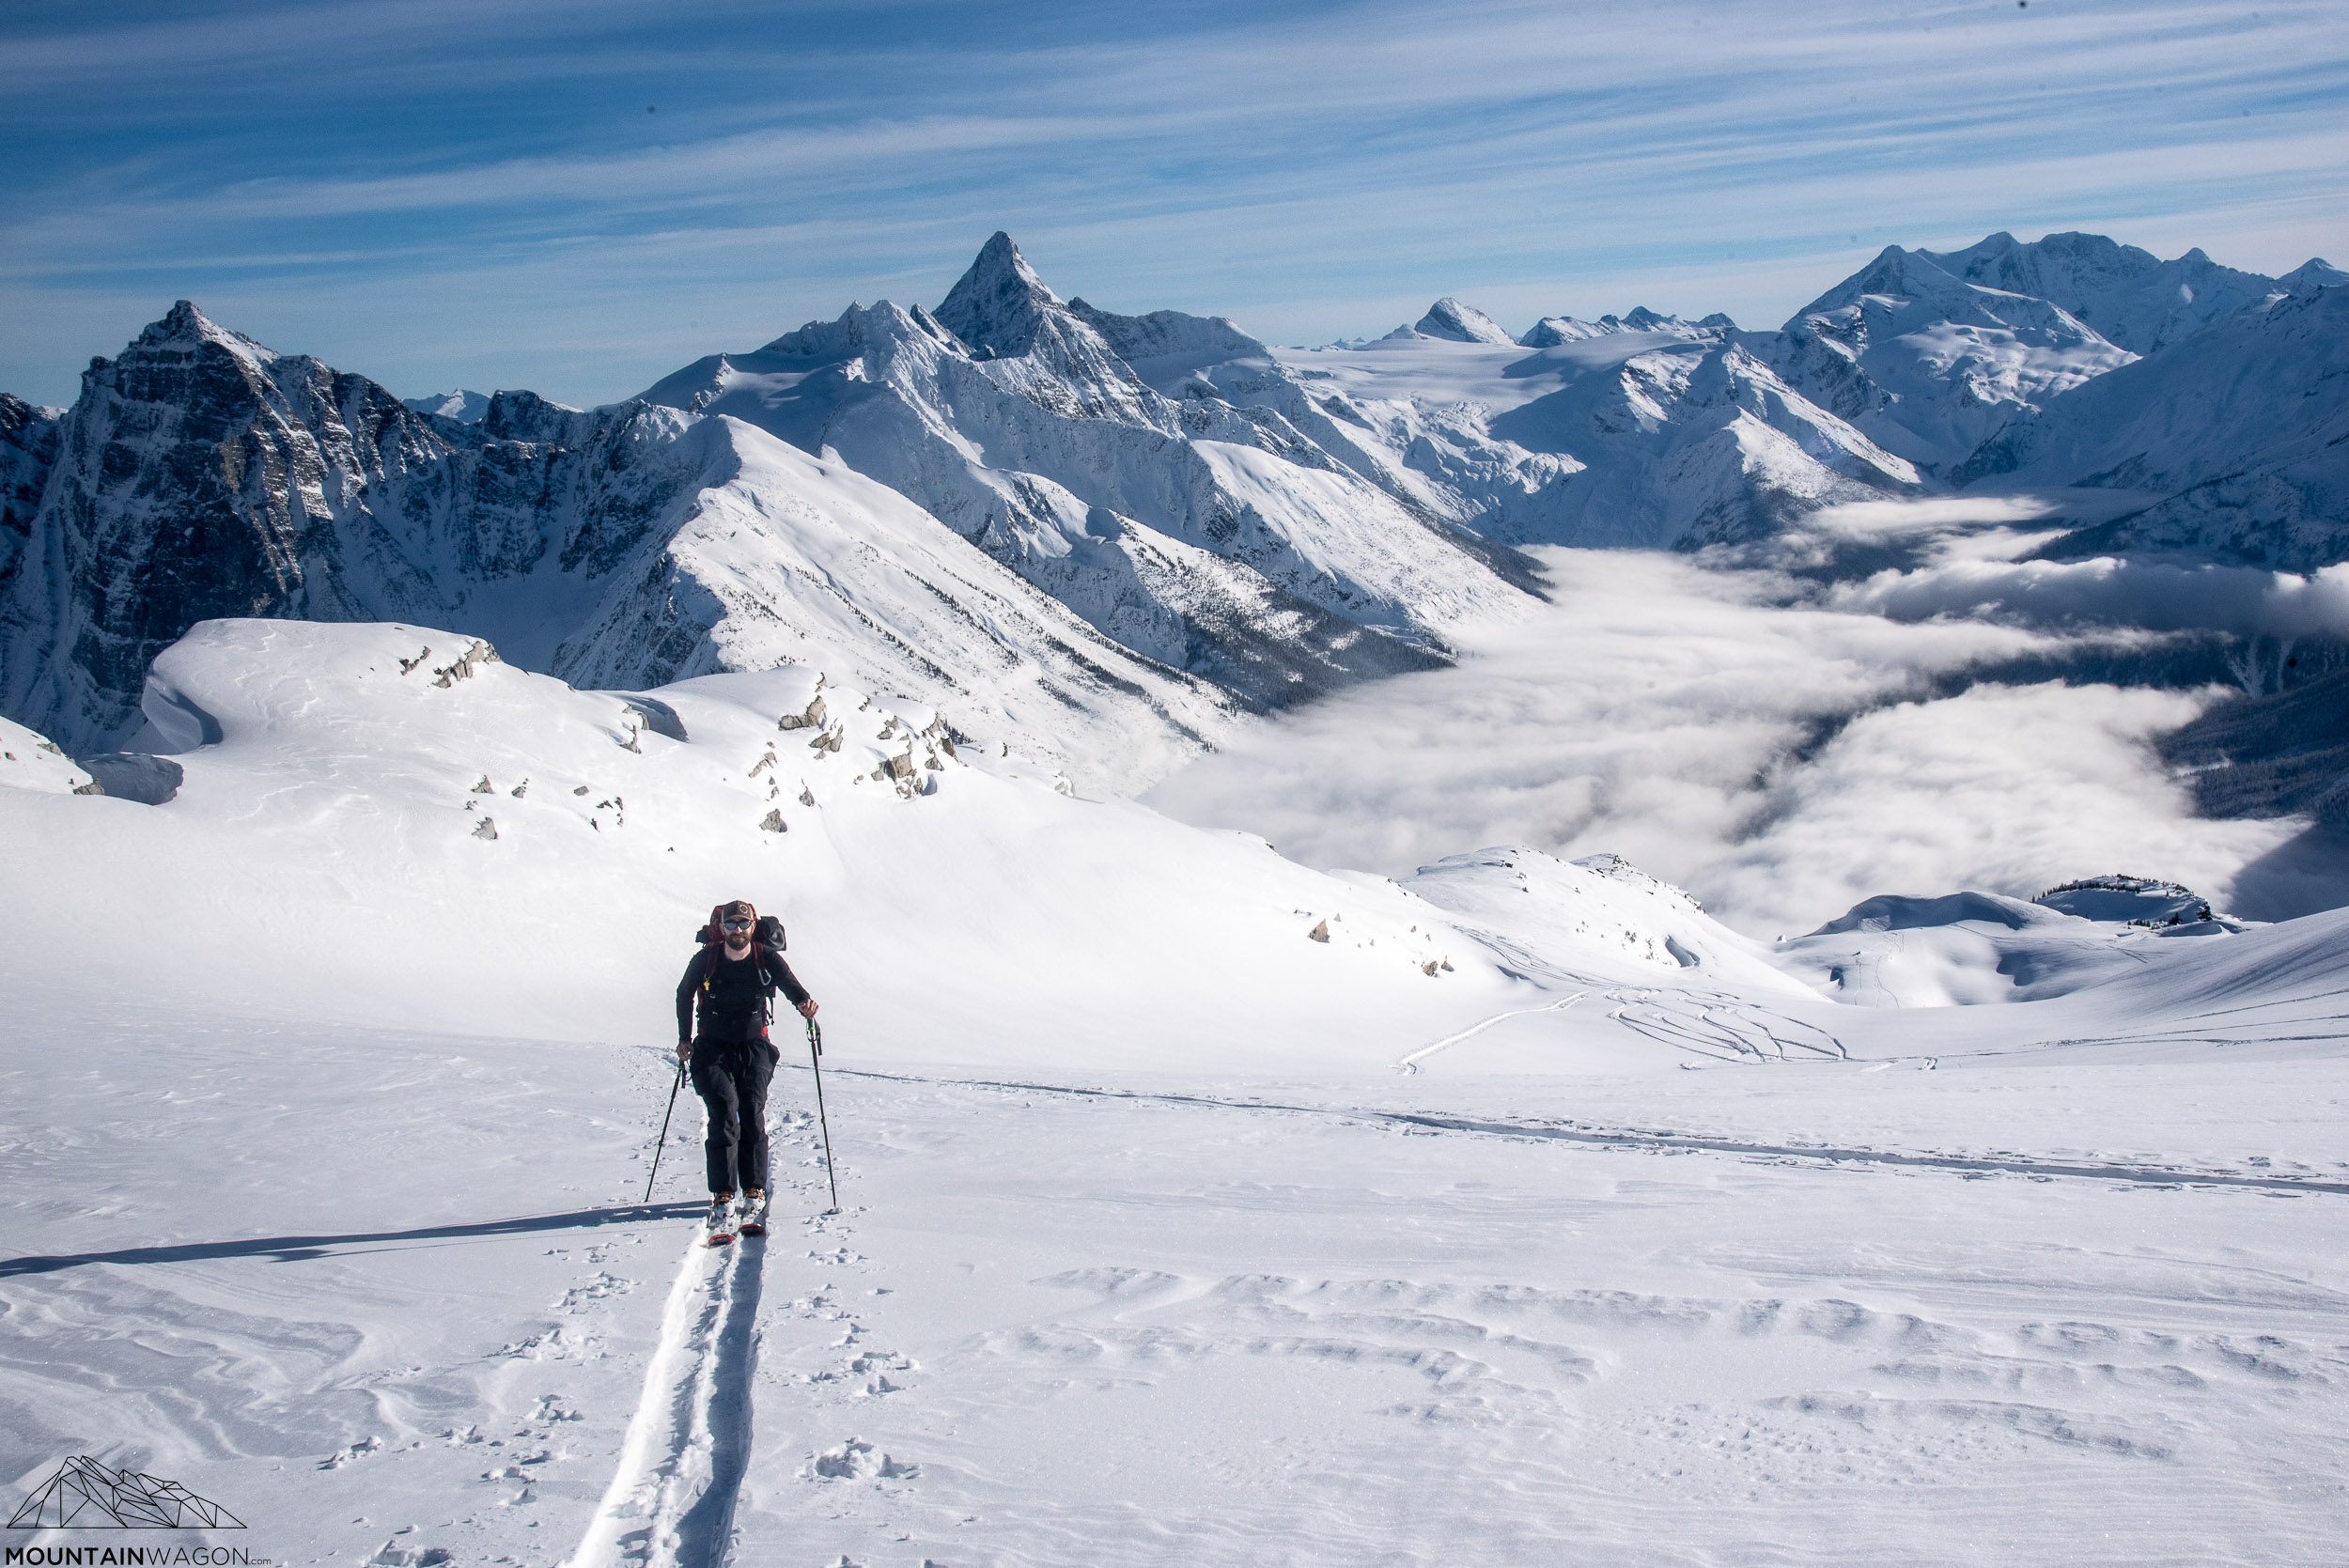 Kyle nearing the top of the Little Sifton Traverse with Sir Donald's incredible ridge in the background